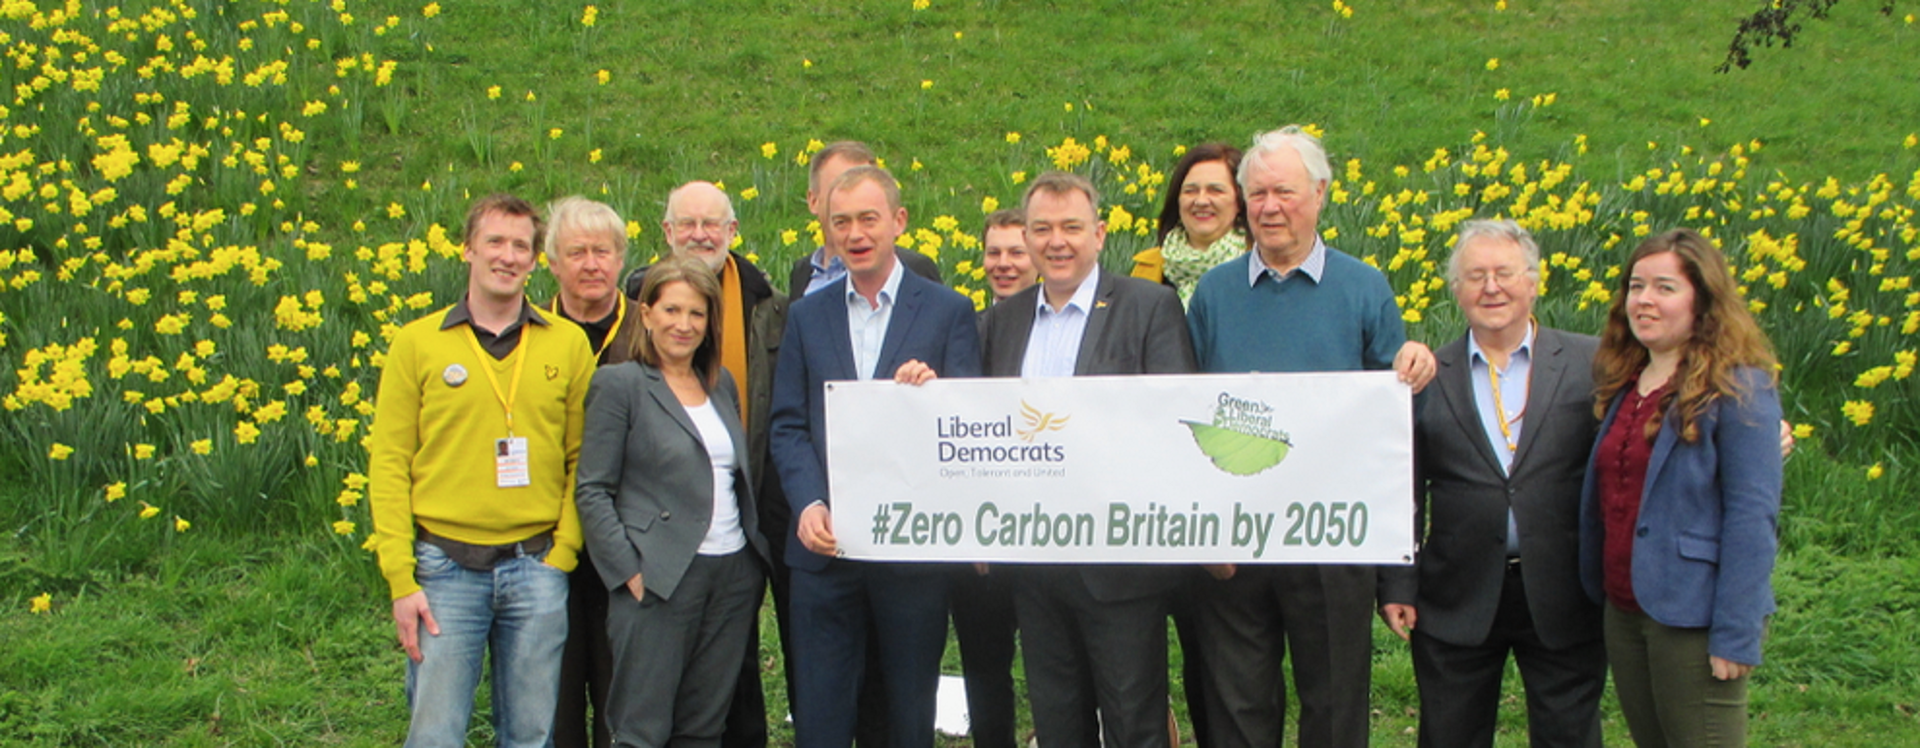 The Green Liberal Democrats (Graham Neale, Chair) Launch Carbon Free by 2050 with Tim Farron and Lynne Featherstone